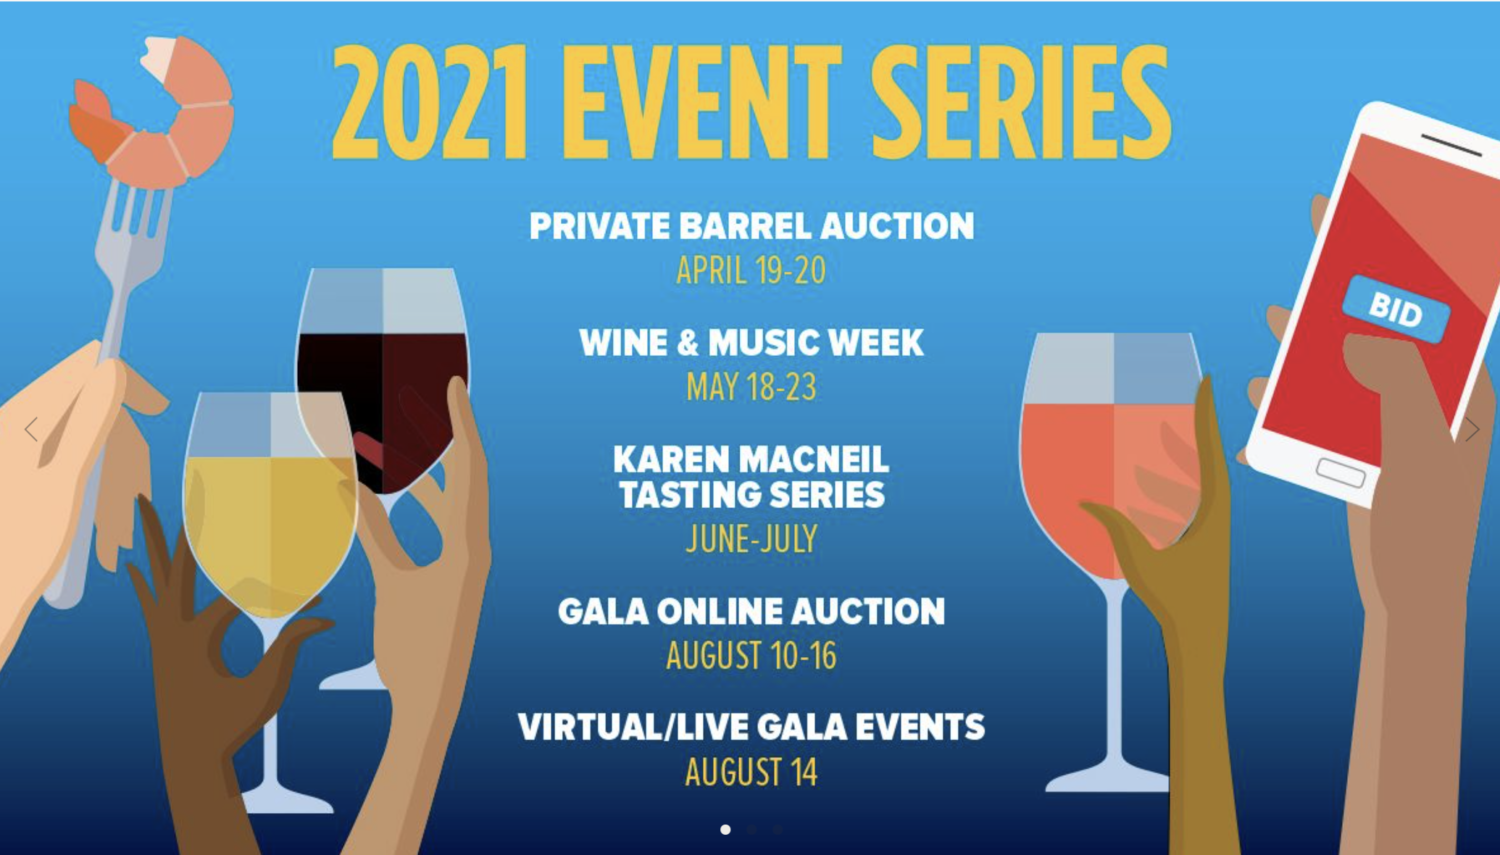 """A poster for events, titled """"2021 Events Series."""" The image is blue with white text and illustrated hands holding glasses of wine."""